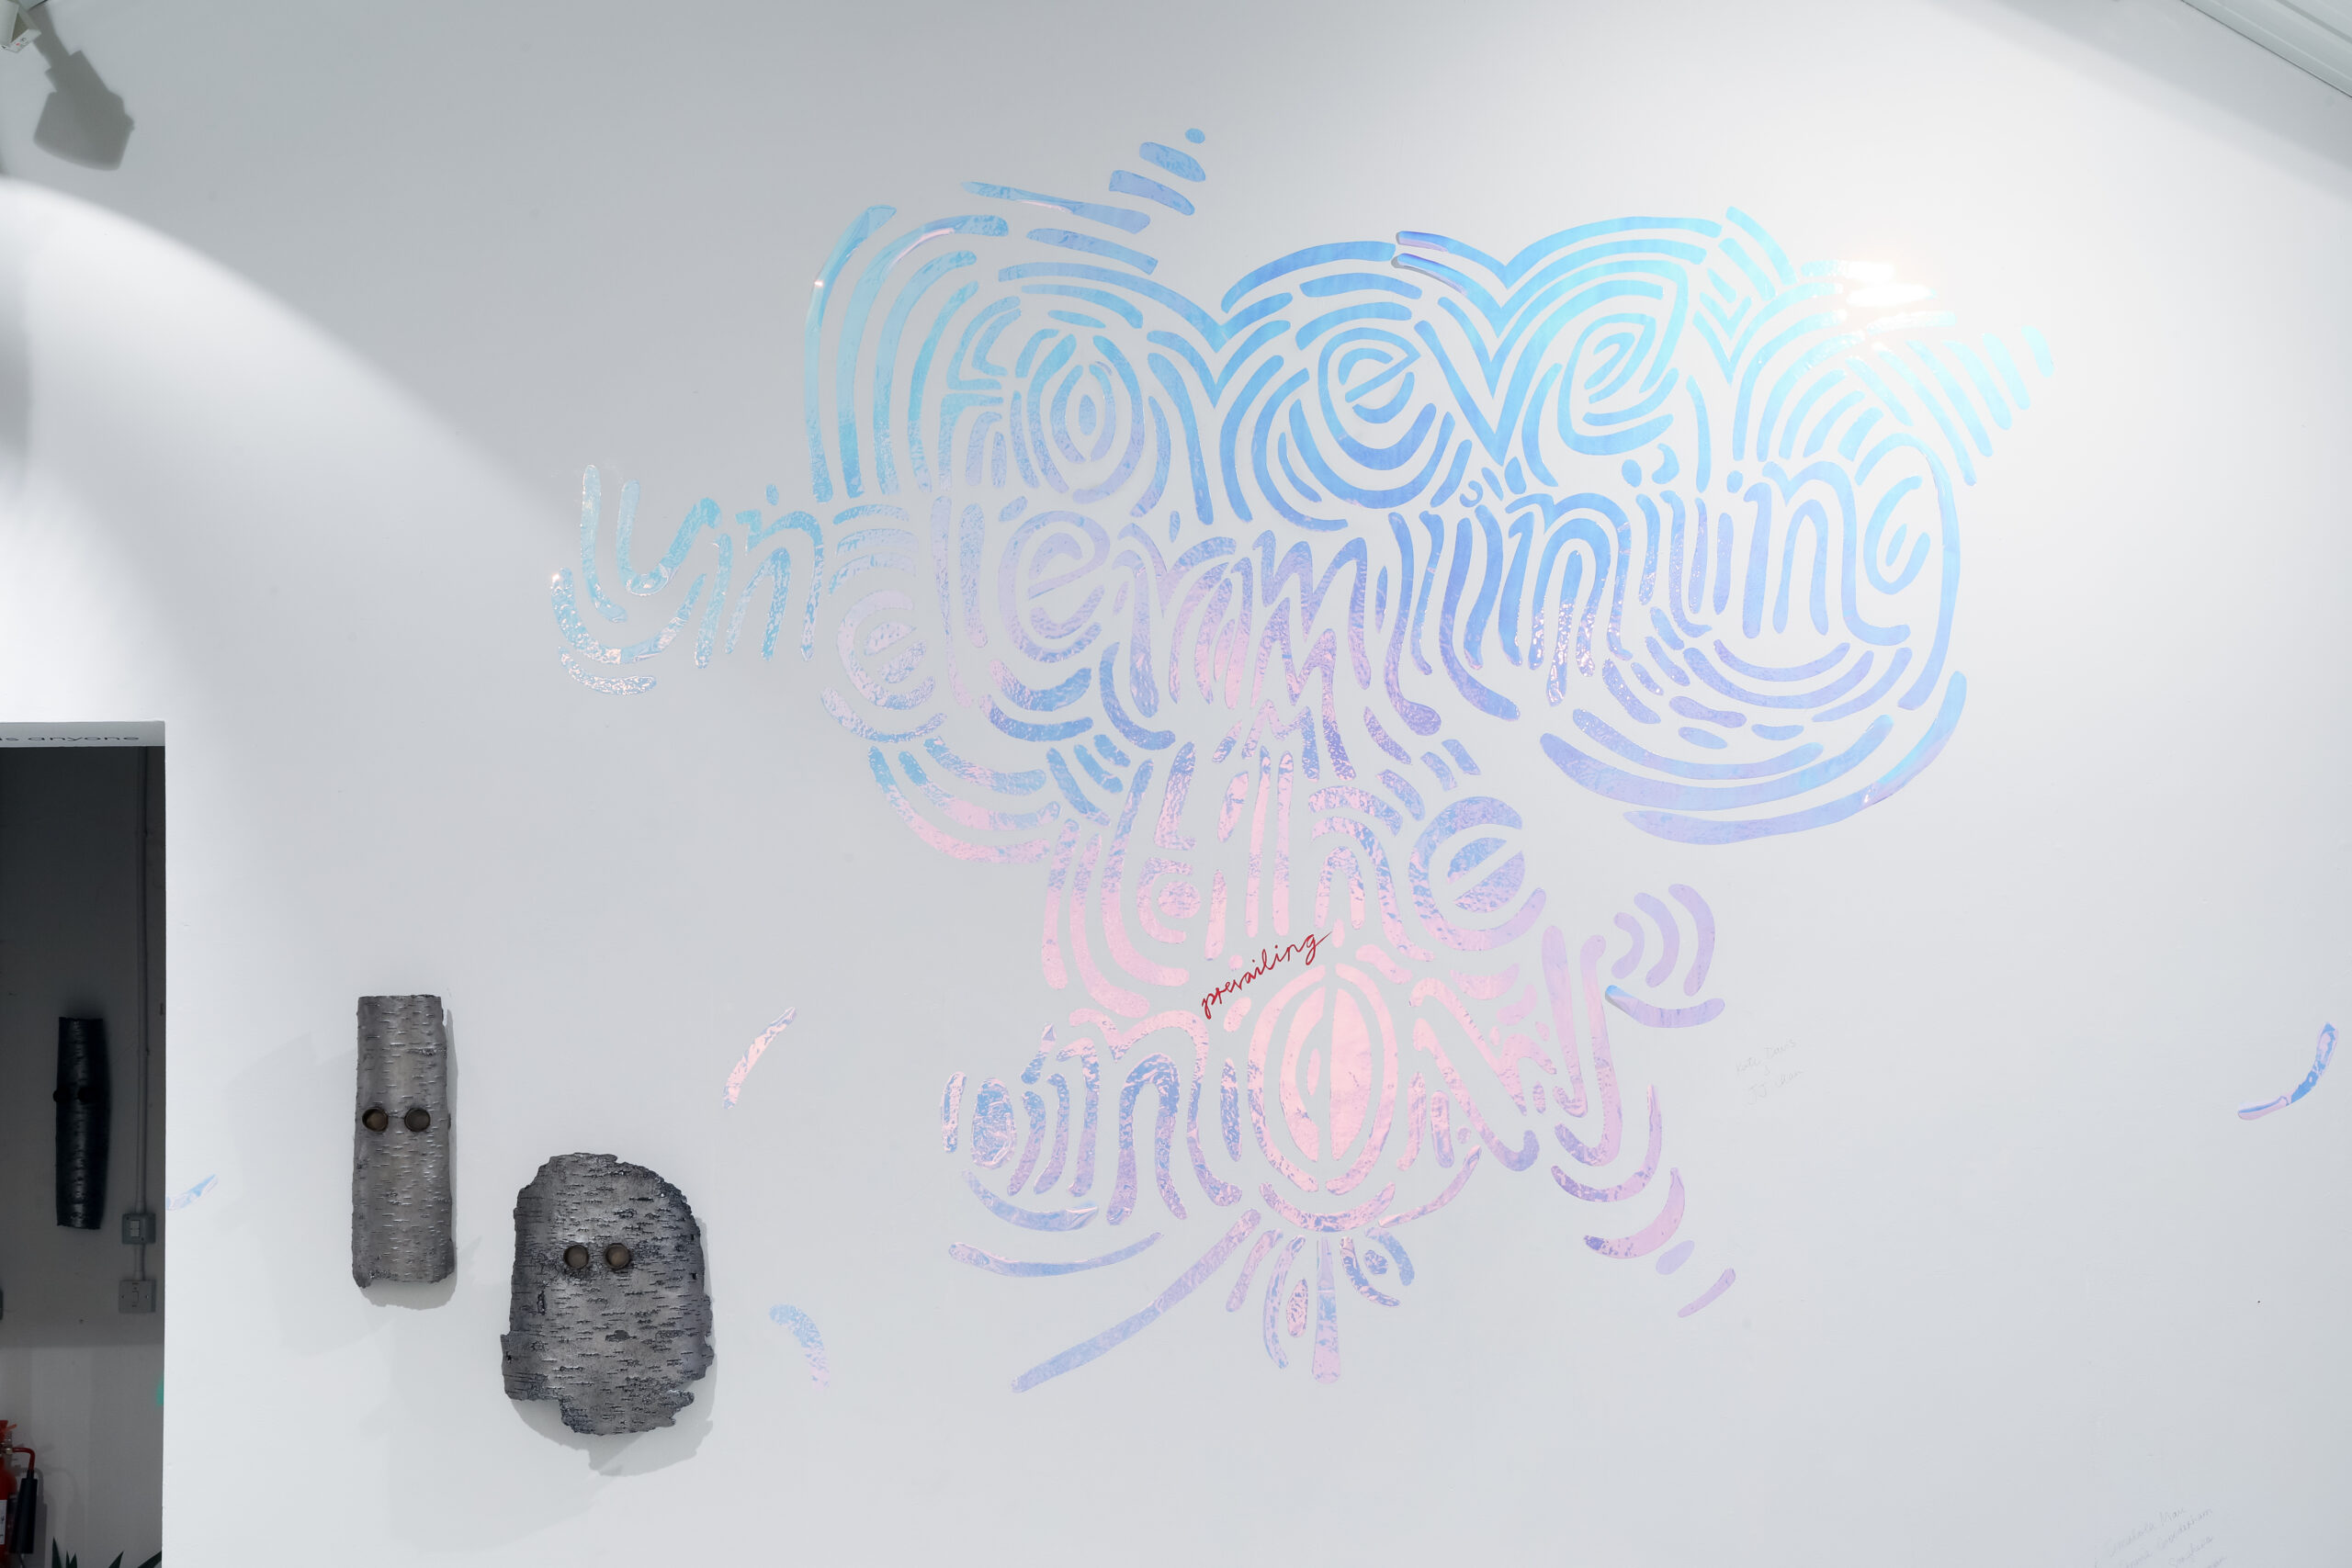 Installation wall painting with words 'Forever Underminging the prevailing Now' in blue and pink. Two metal mask sculptures wall mounted to the left.